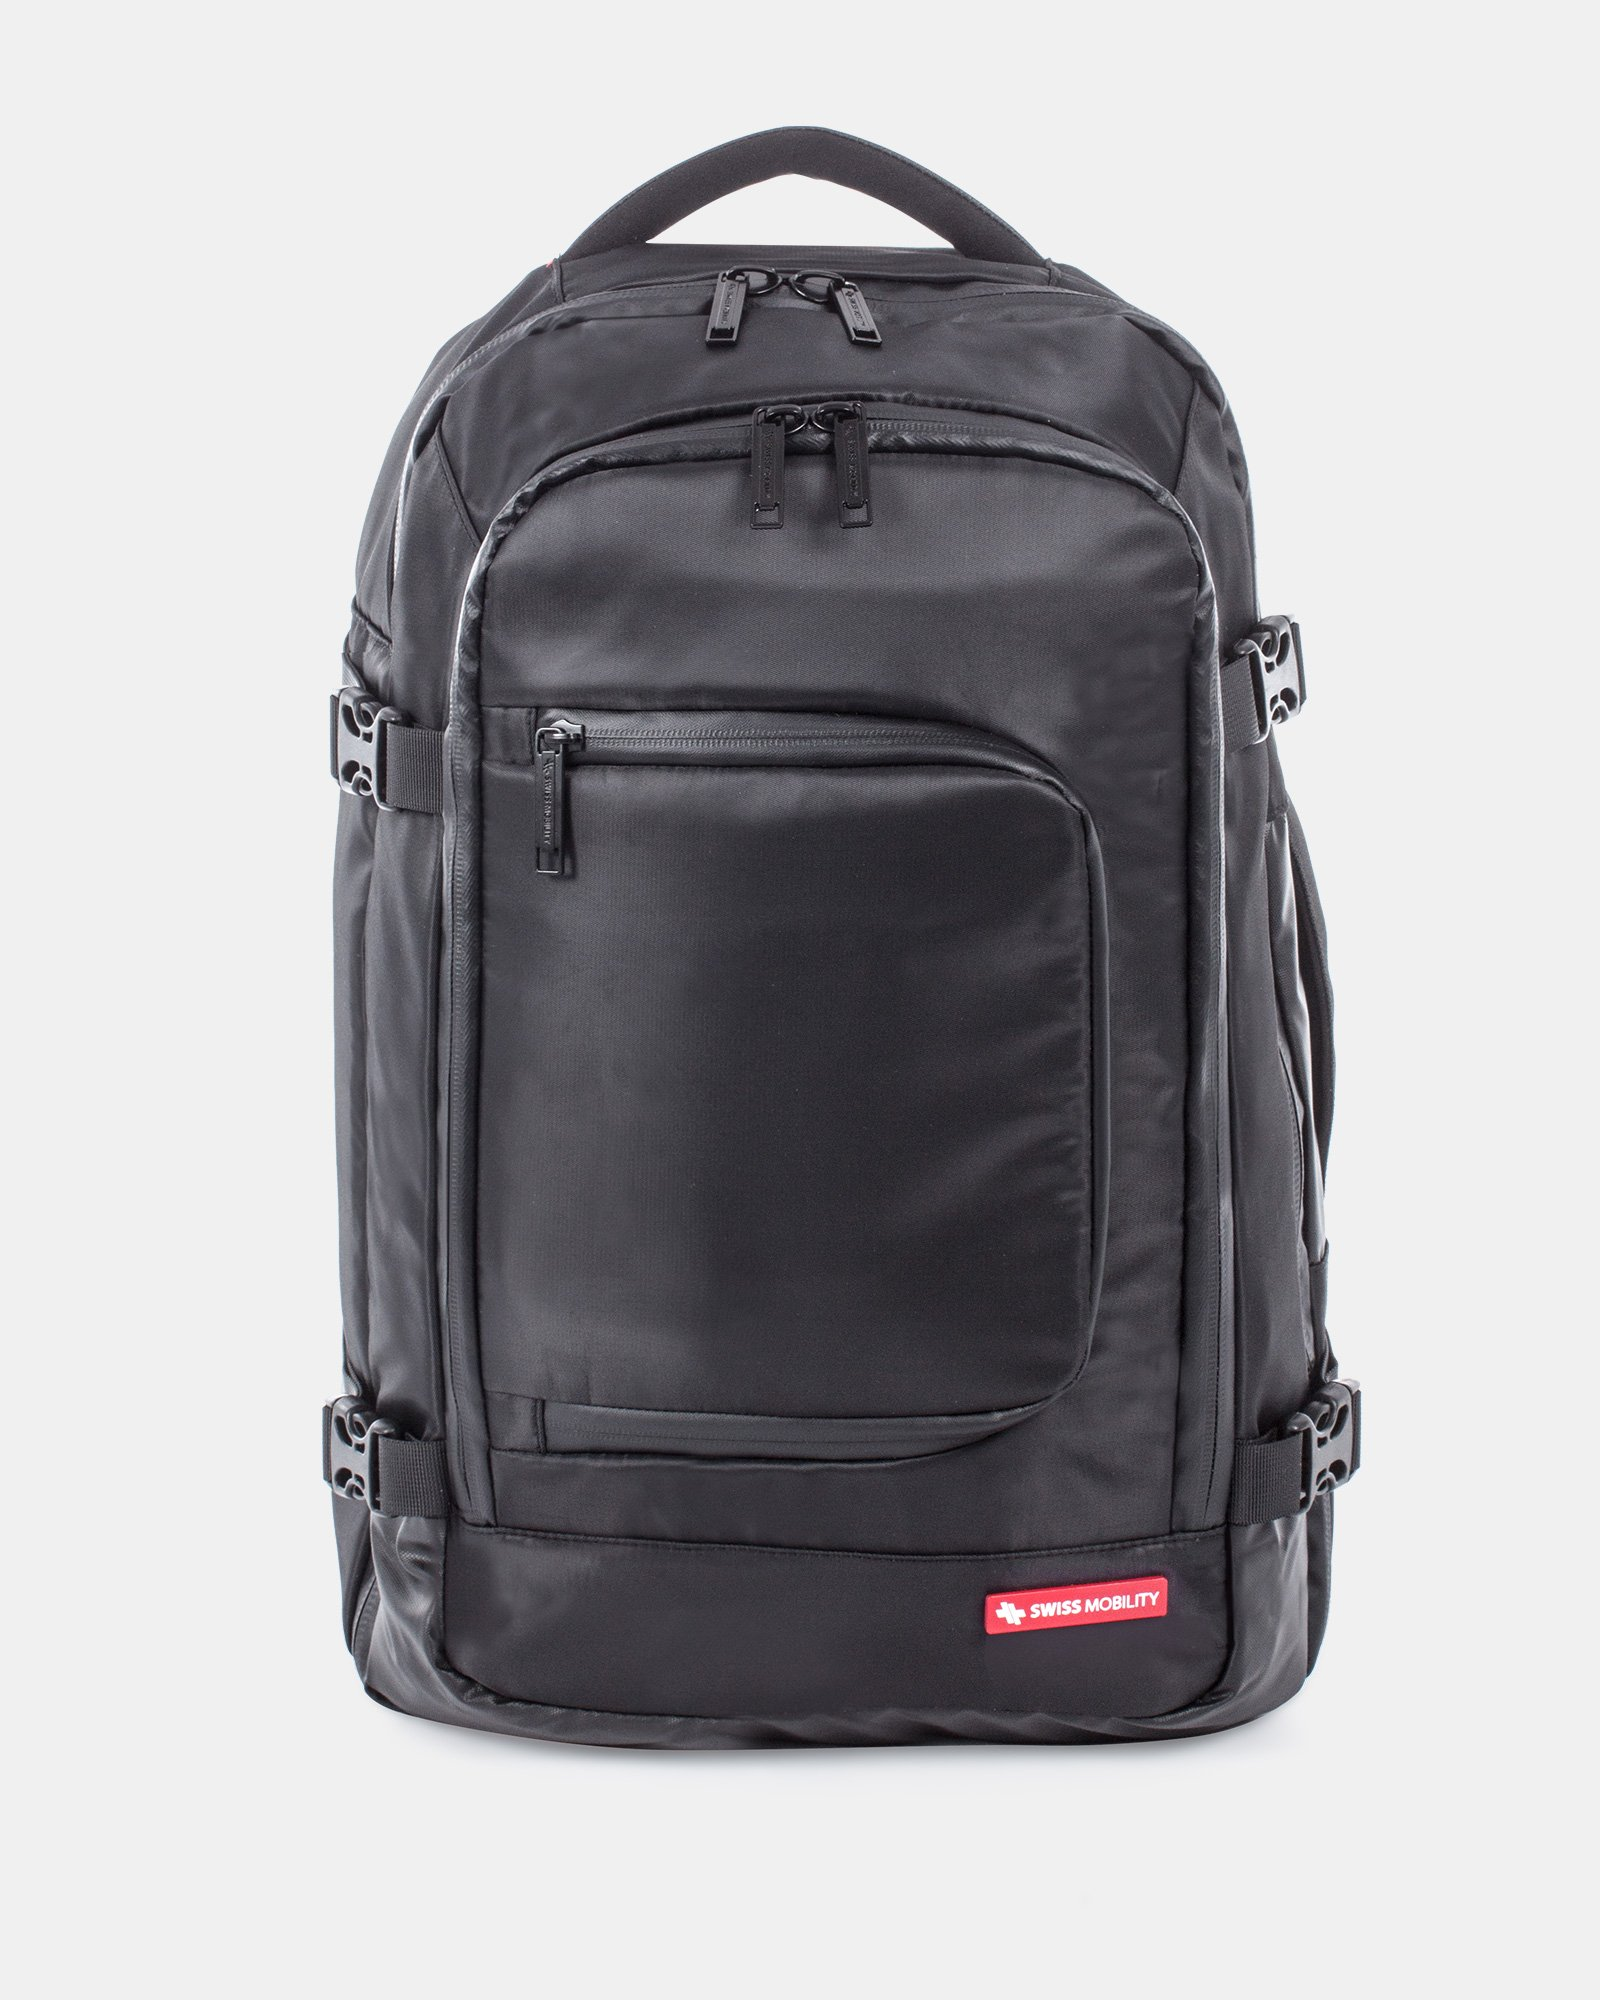 """cadence - Convertible Backpack fits most 15.6"""" laptop - Black - Swiss Mobility - Zoom"""